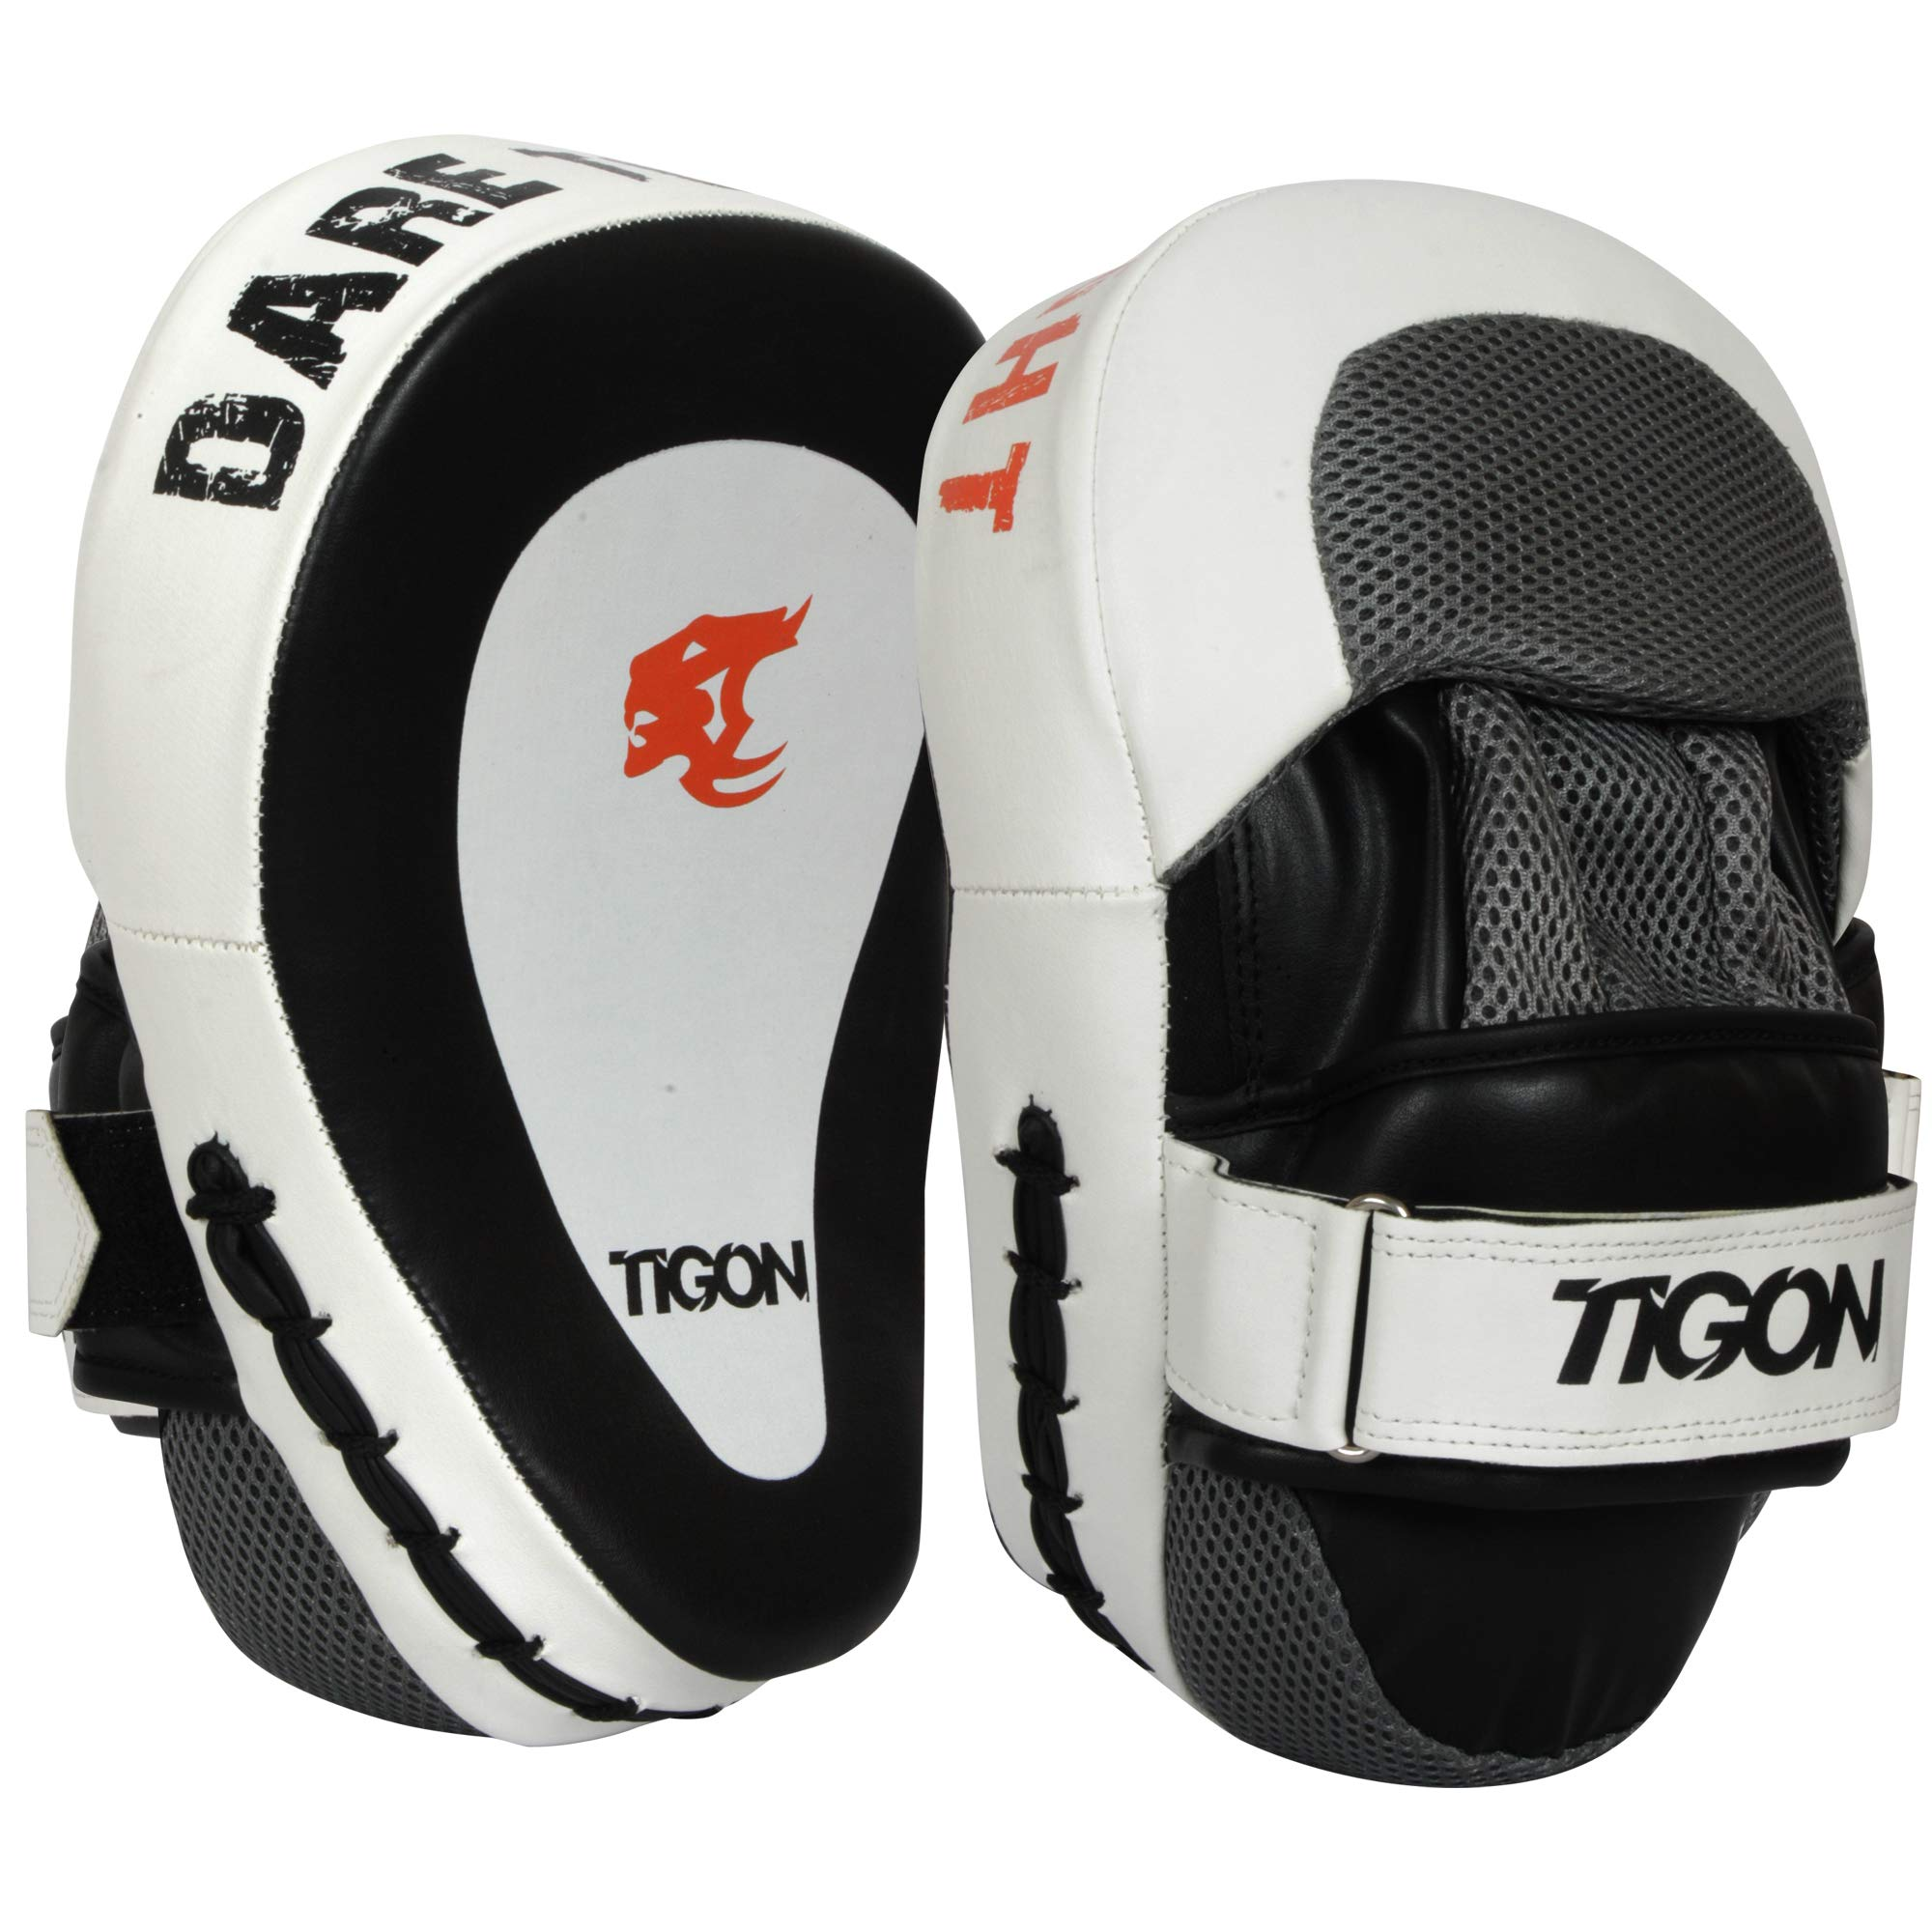 Focus Pads, Hook & Jab Mitts, MMA Boxing Kick Gloves Punching Training Sparring by Tigon Sports